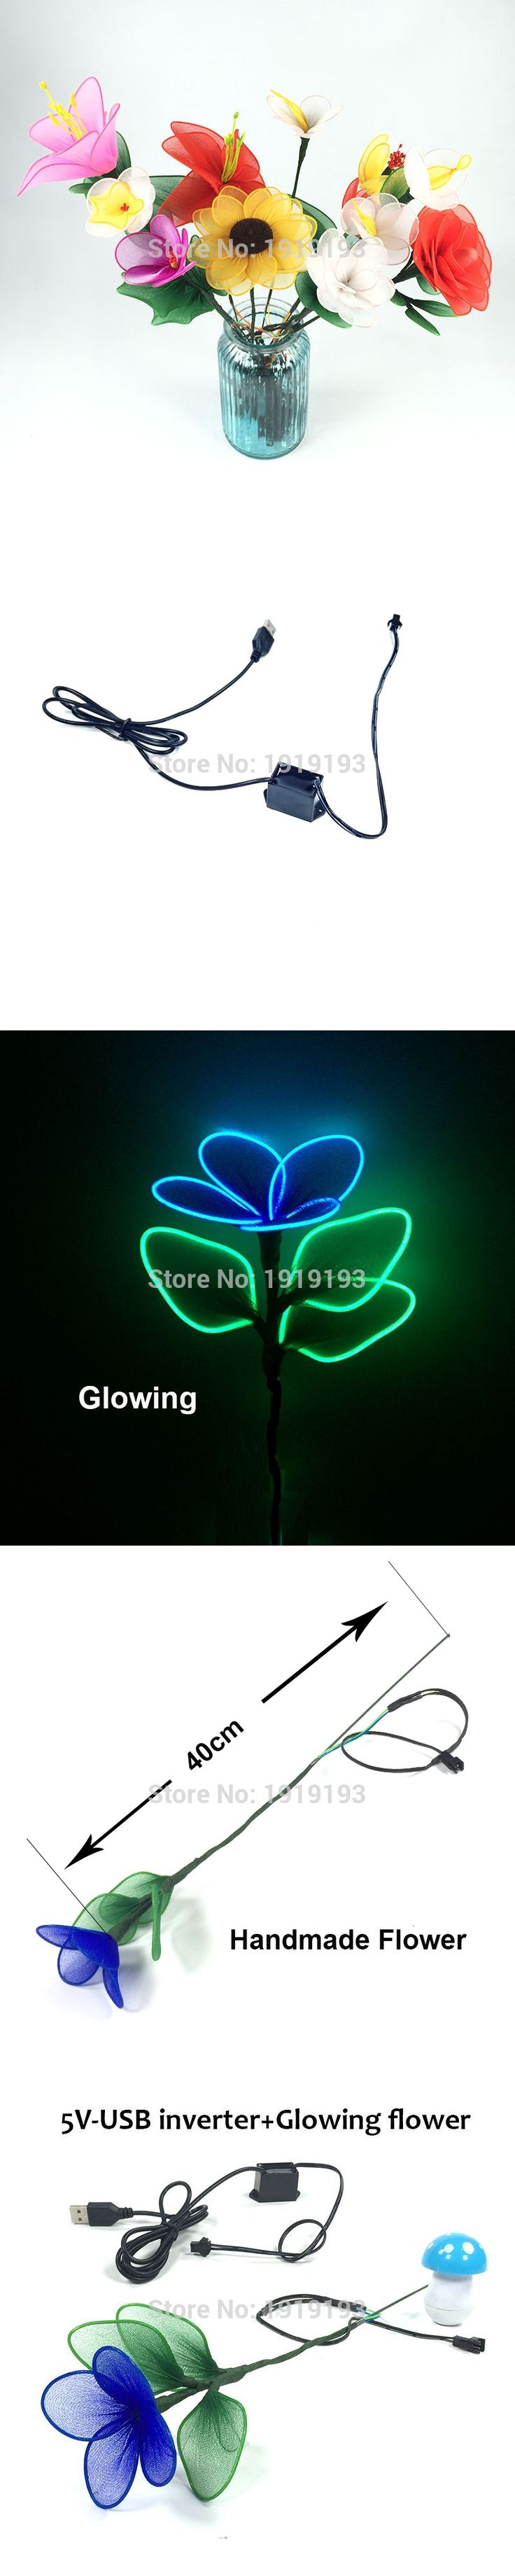 New Arrival Stage Design Light up Shine EL wire Flower Novelty Lighting Bright Neon EL Flower as Night Lamp,Wall Lamp,Home decor